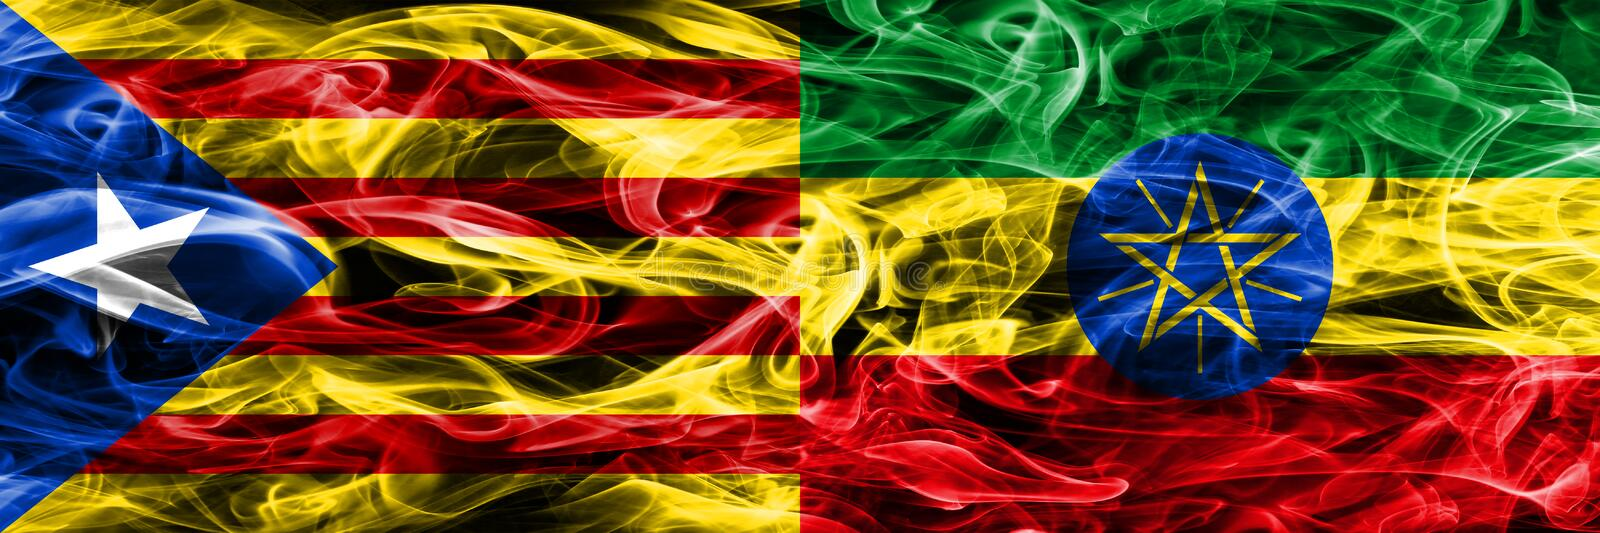 Catalonia vs Ethiopia copy smoke flags placed side by side. Thick colored silky smoke flags of Catalan and Ethiopia copy.  royalty free illustration